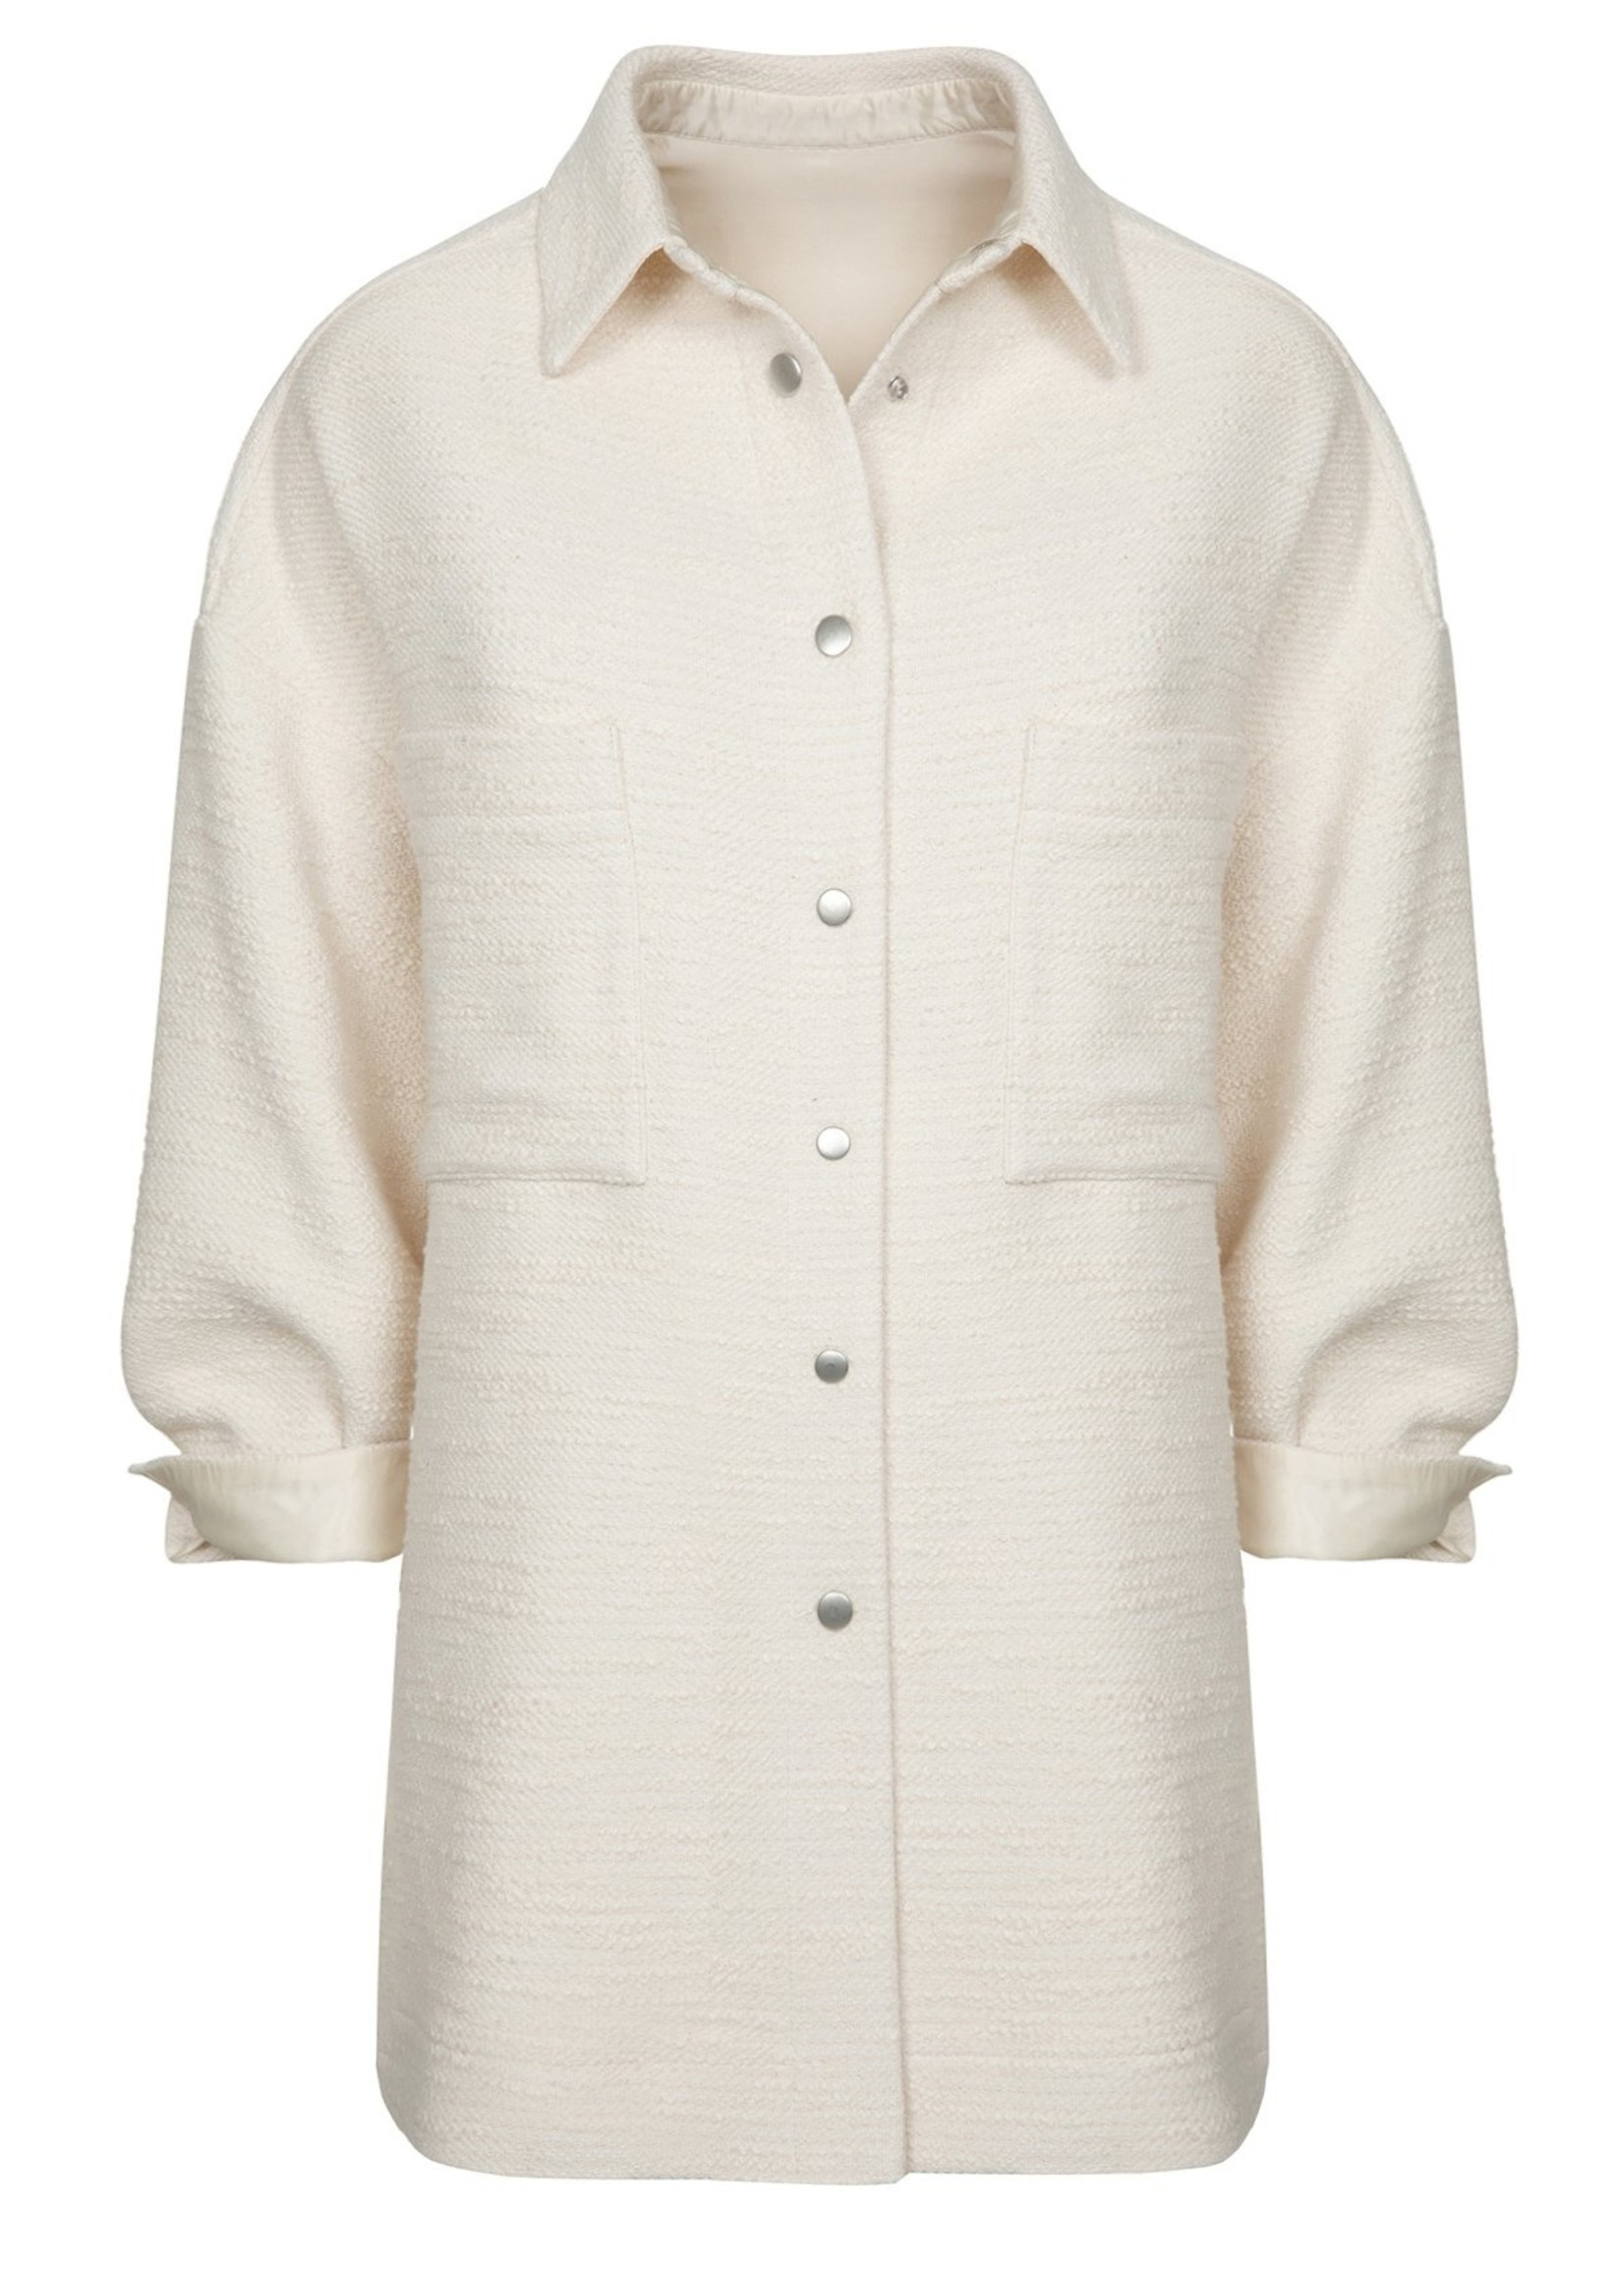 Ame ame antwerp jacket closure with pressed buttons off white